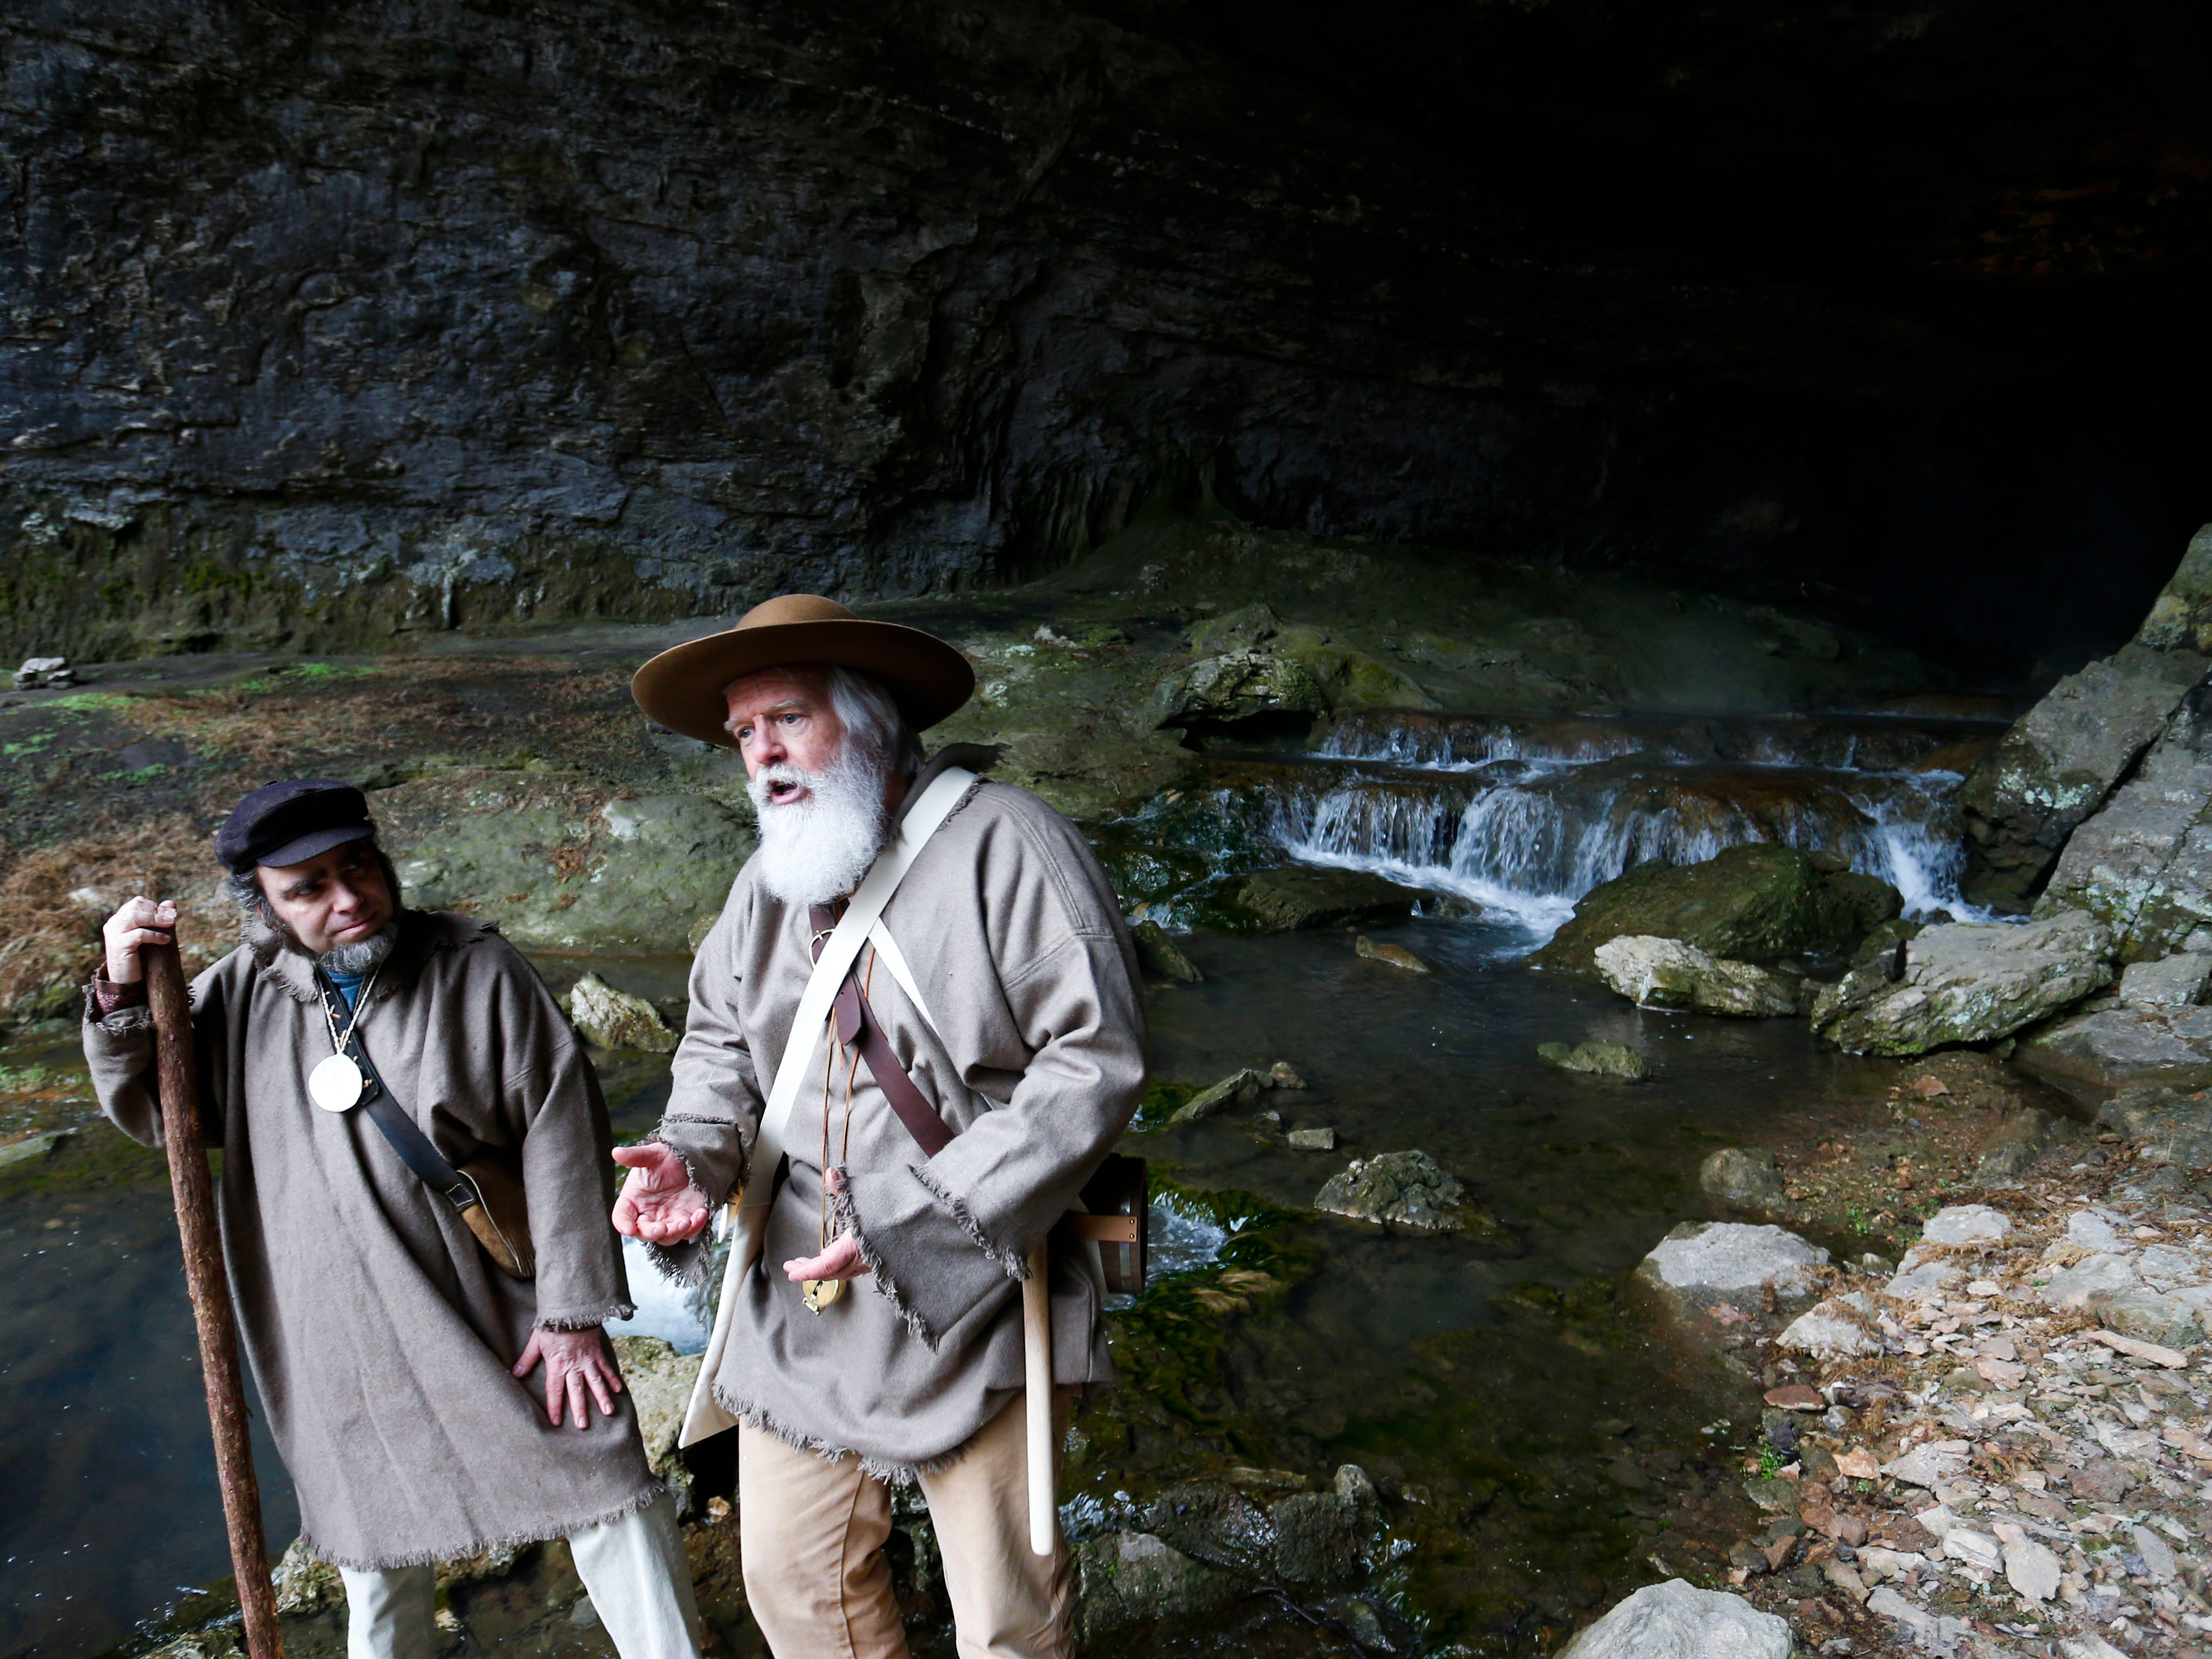 Rick Mansfield, right, talks about re-creating Henry Rowe Schoolcraft's 900-mile trek through the Ozarks at Smallin Civil War Cave on Wednesday, Jan. 2, 2019, almost 200 years to the day that Schoolcraft visited the cave. Eric Fuller, left, portrays Schoolcraft's companion on the trek, Levi Pettibone.